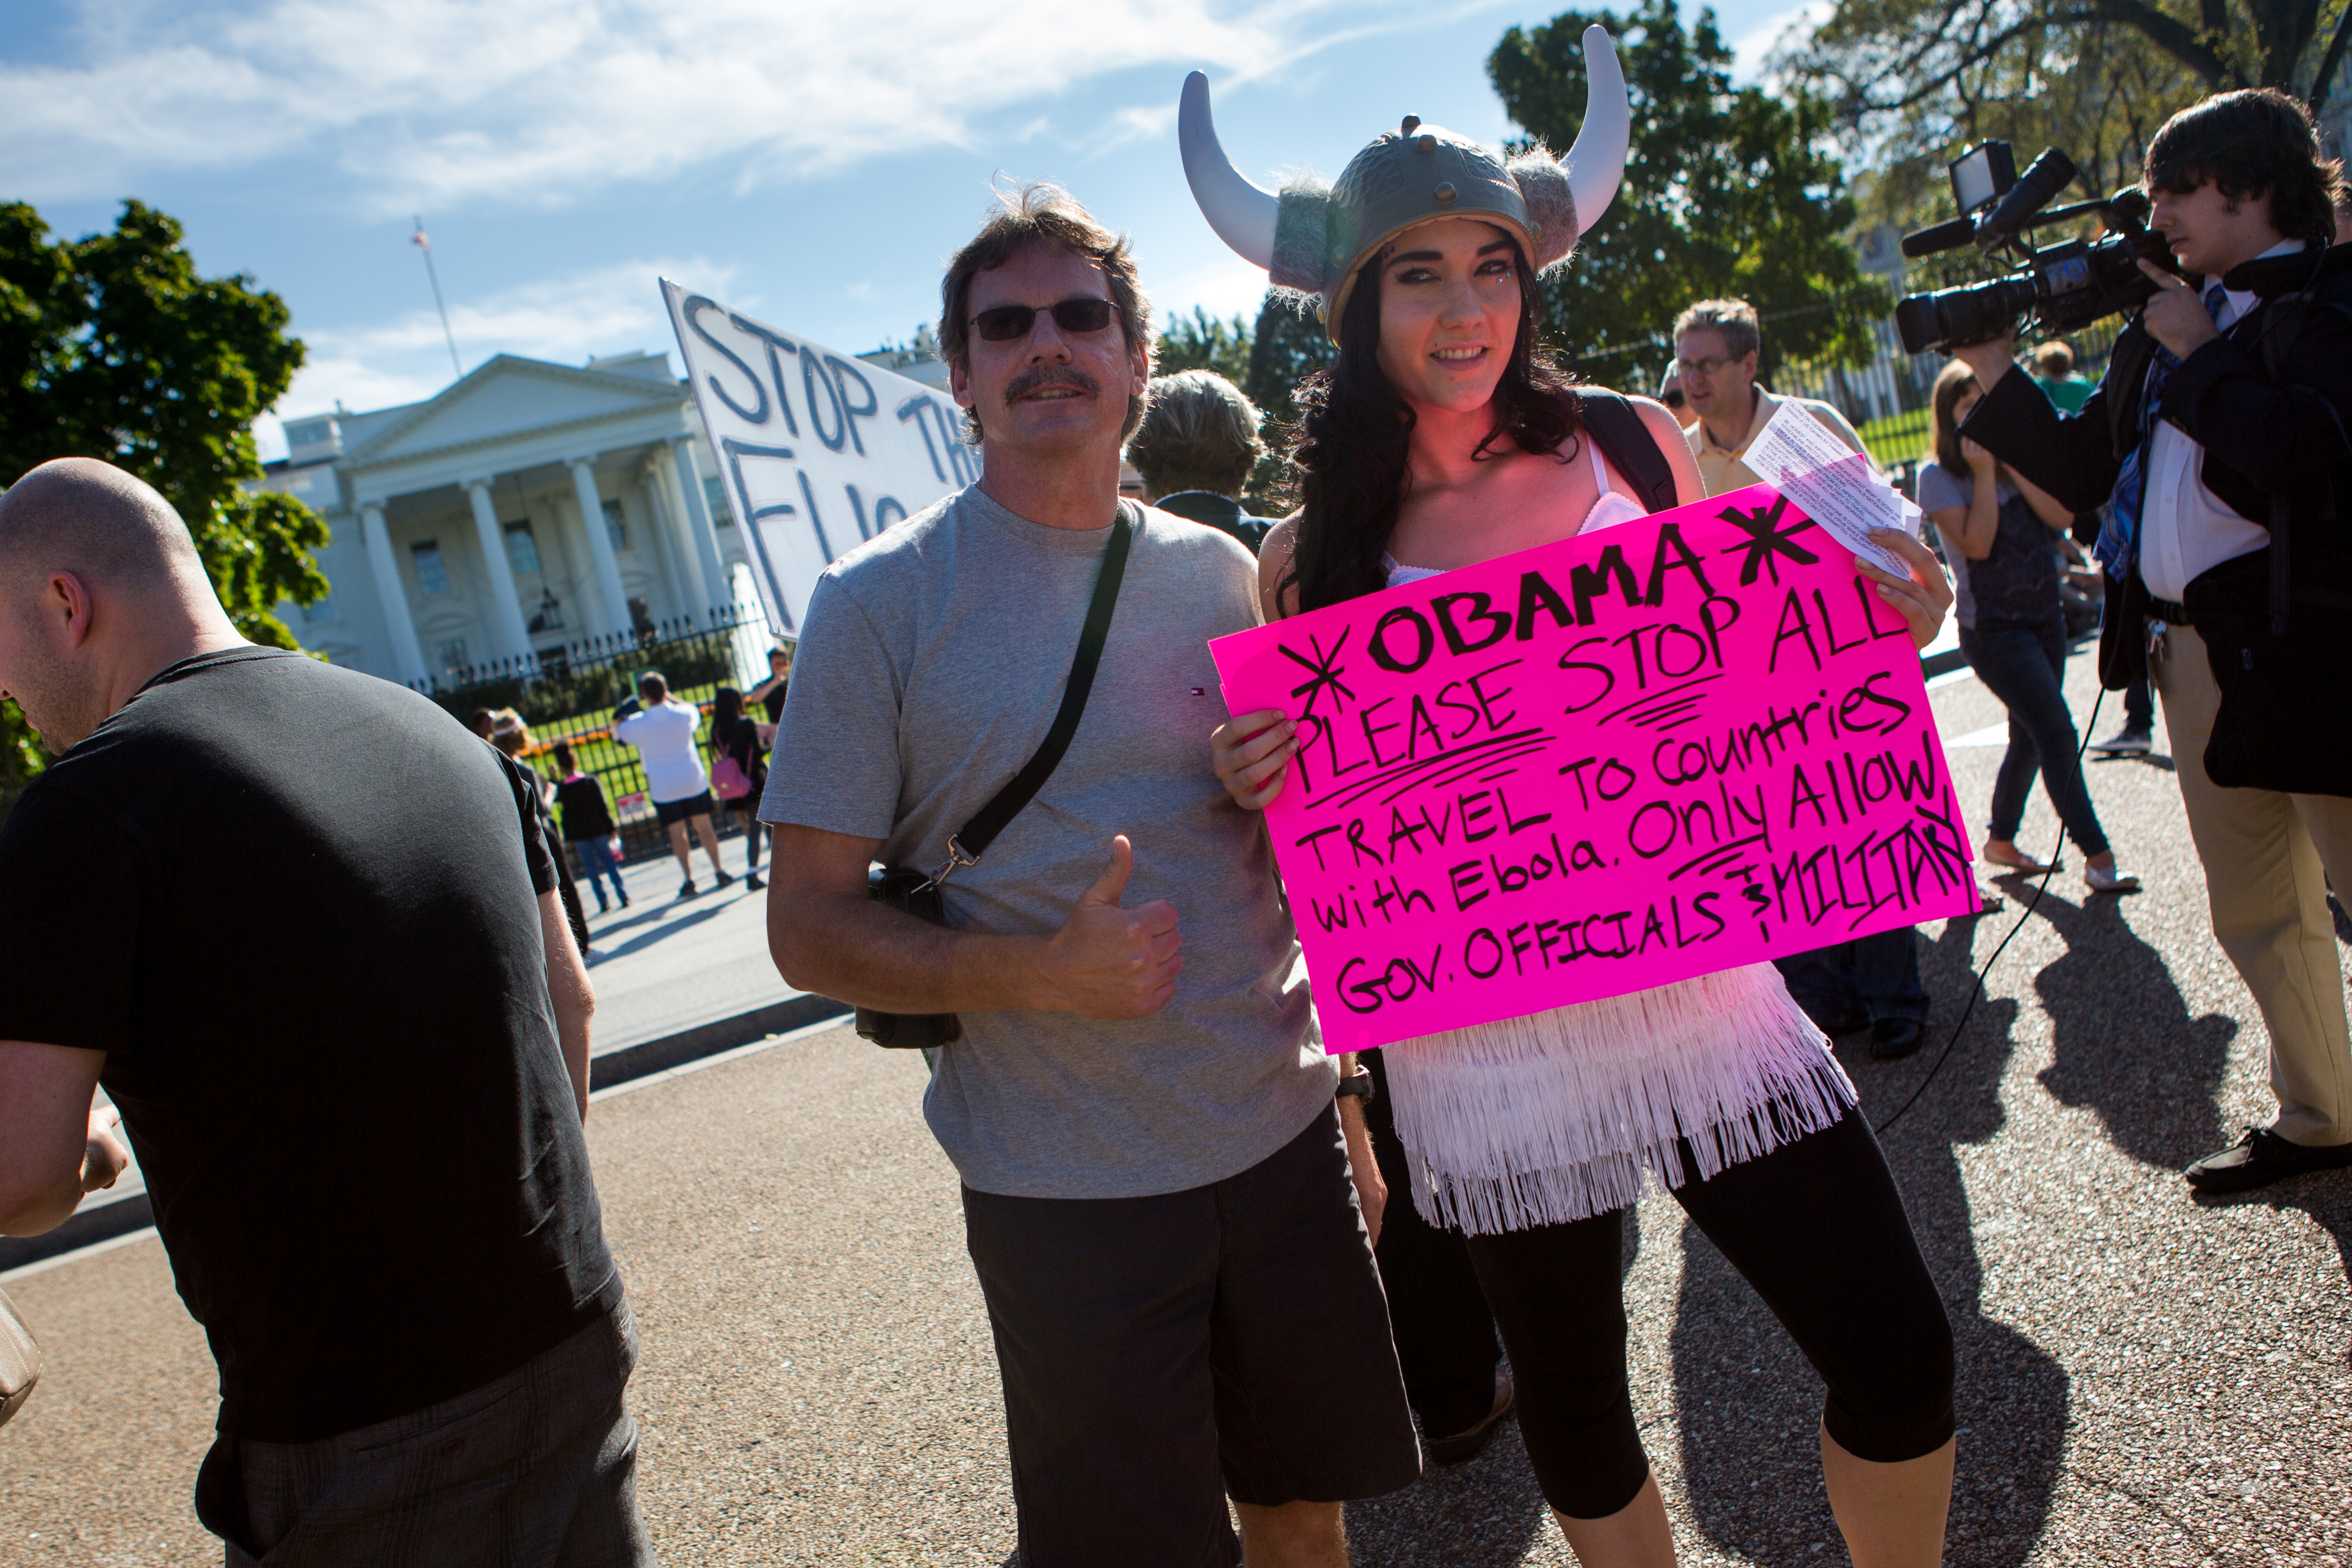 Protestors hold up a sign in front of the White House asking to bar air travel from the Ebola hot zone.